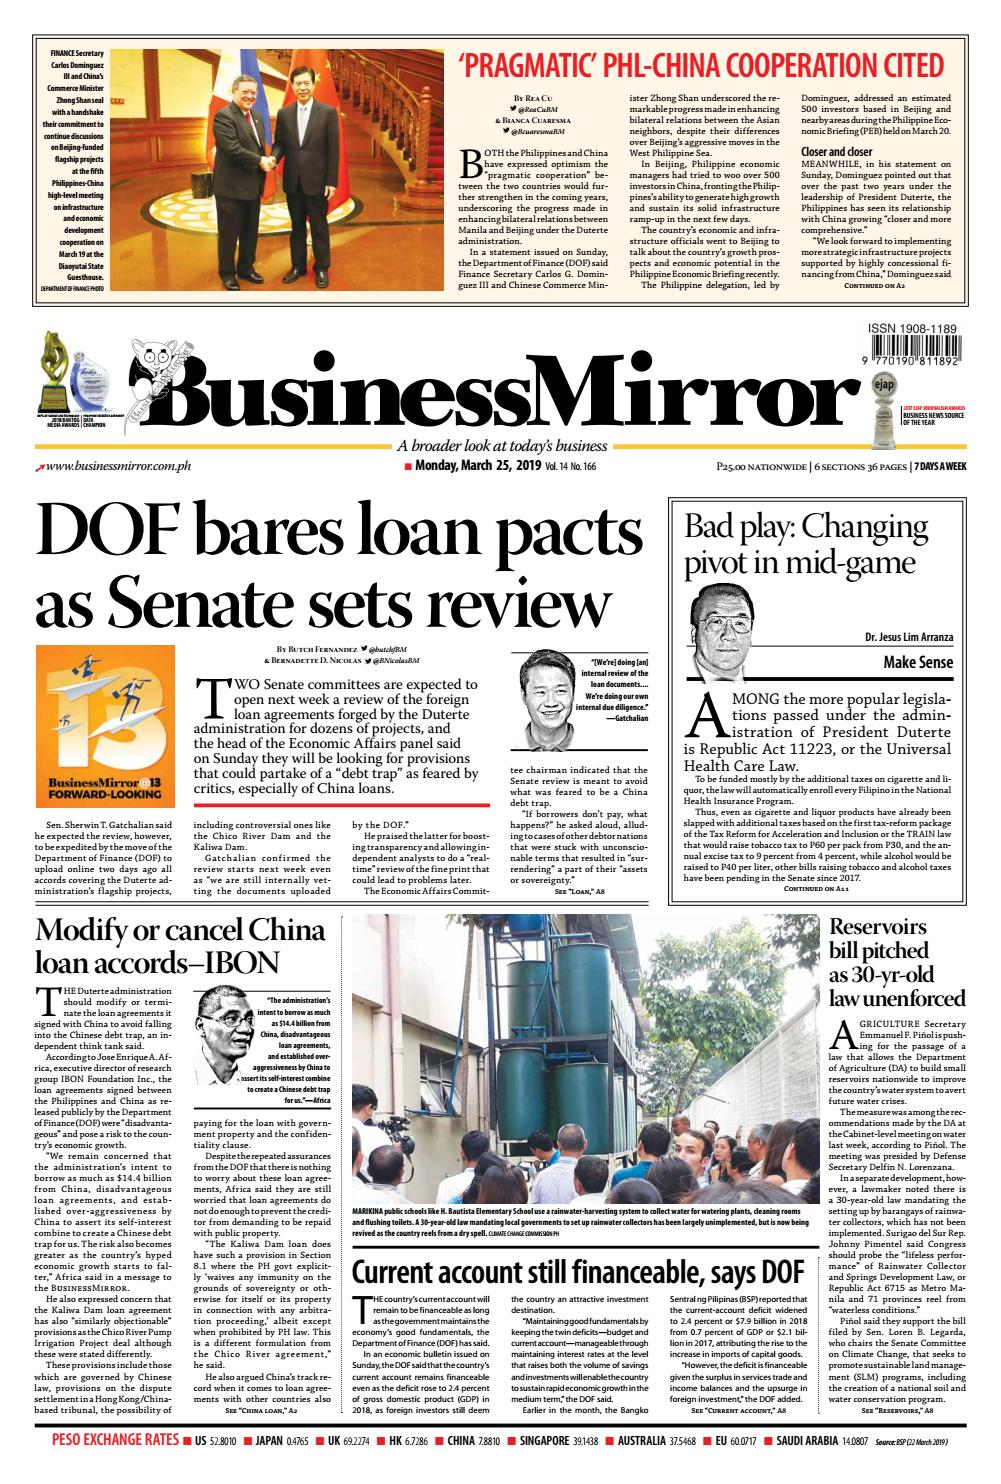 BusinessMirror March 25, 2019 by BusinessMirror - issuu